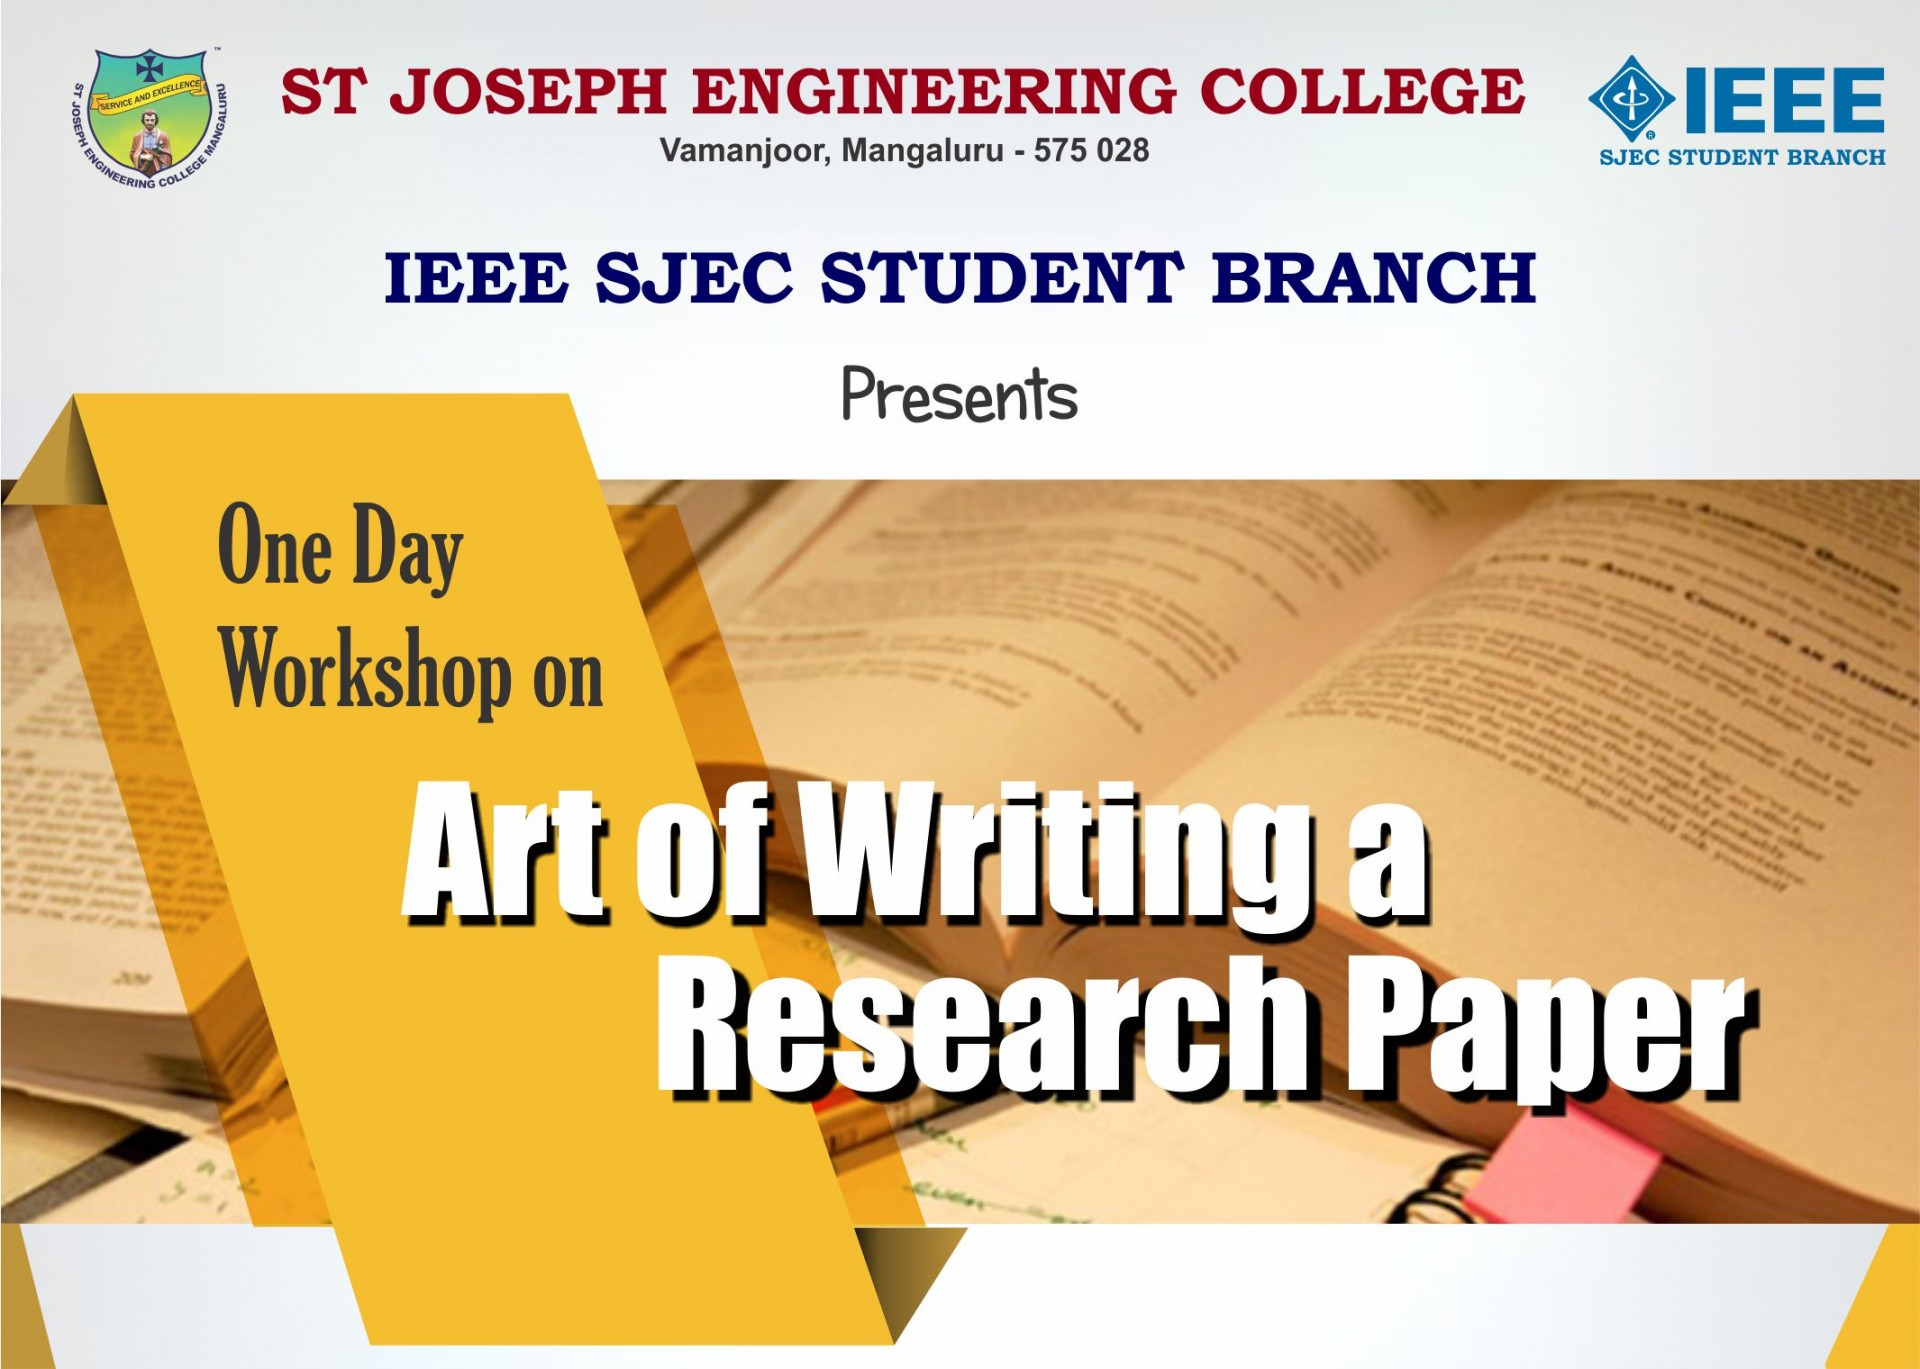 017 Computer Science Research Papers Paper Workshop Awful 2018 Latest In 1920